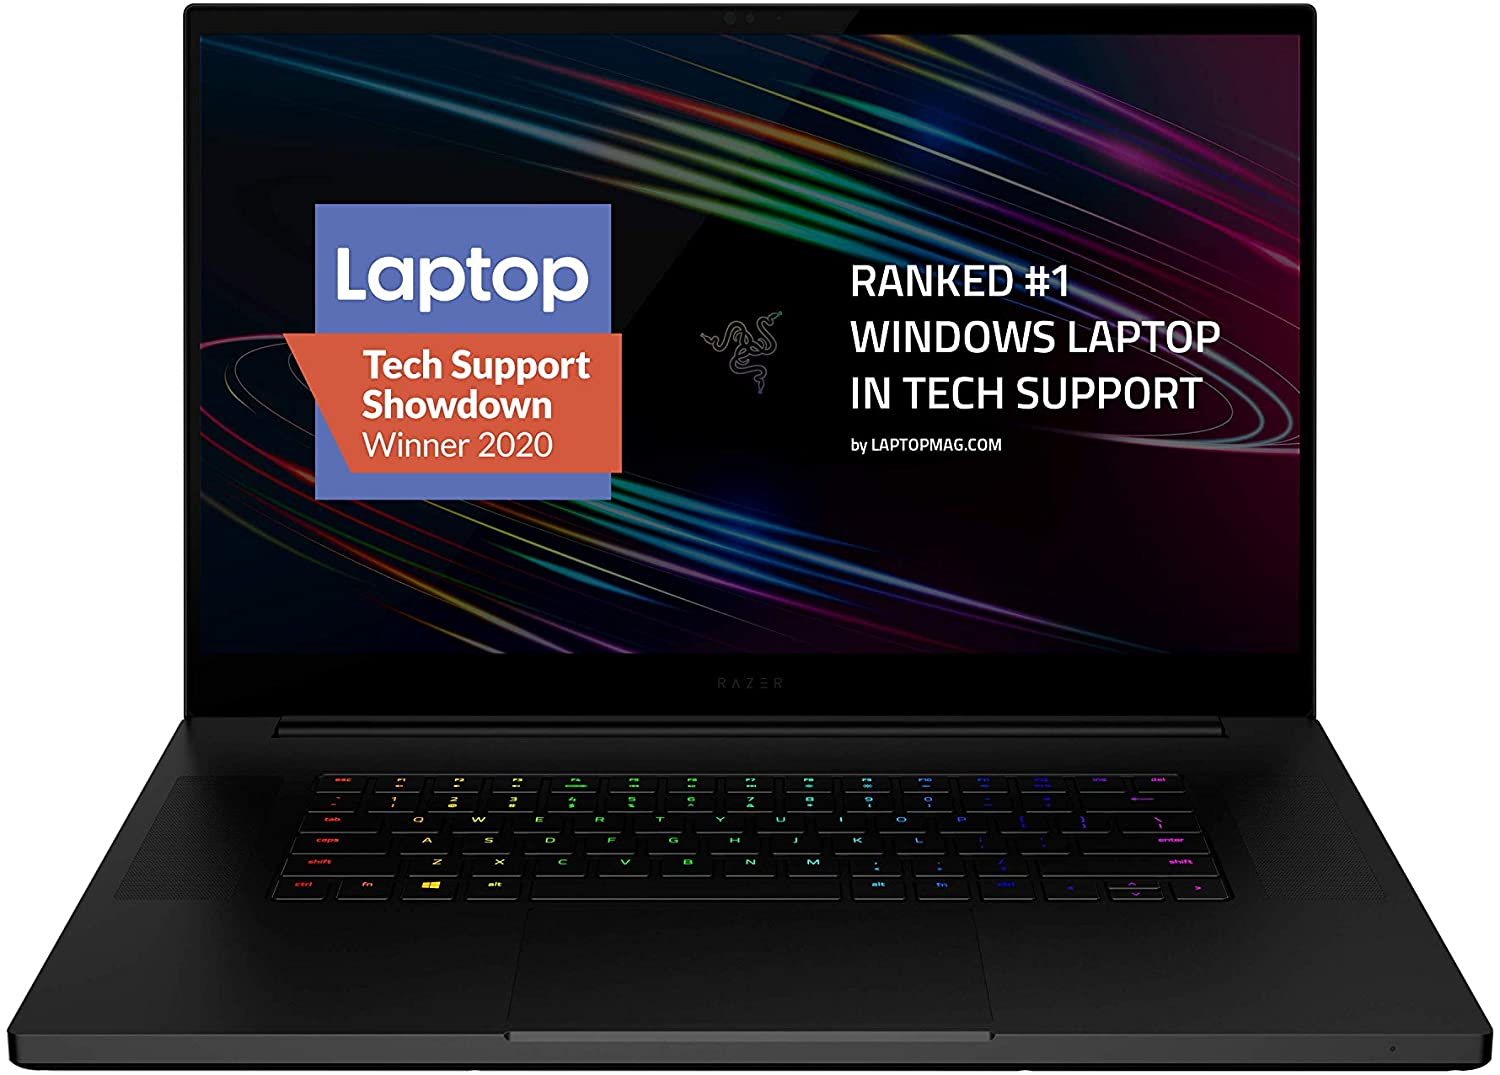 "Razer Blade Pro 17 Gaming Laptop 2020: Intel Core i7-10875H 8-Core, NVIDIA GeForce RTX 2080 SUPER, 17.3"" 4K 120Hz, 16GB RAM, 1TB SSD, CNC, Chroma RGB, Thunderbolt 3, SD Card Reader, Creator Ready"